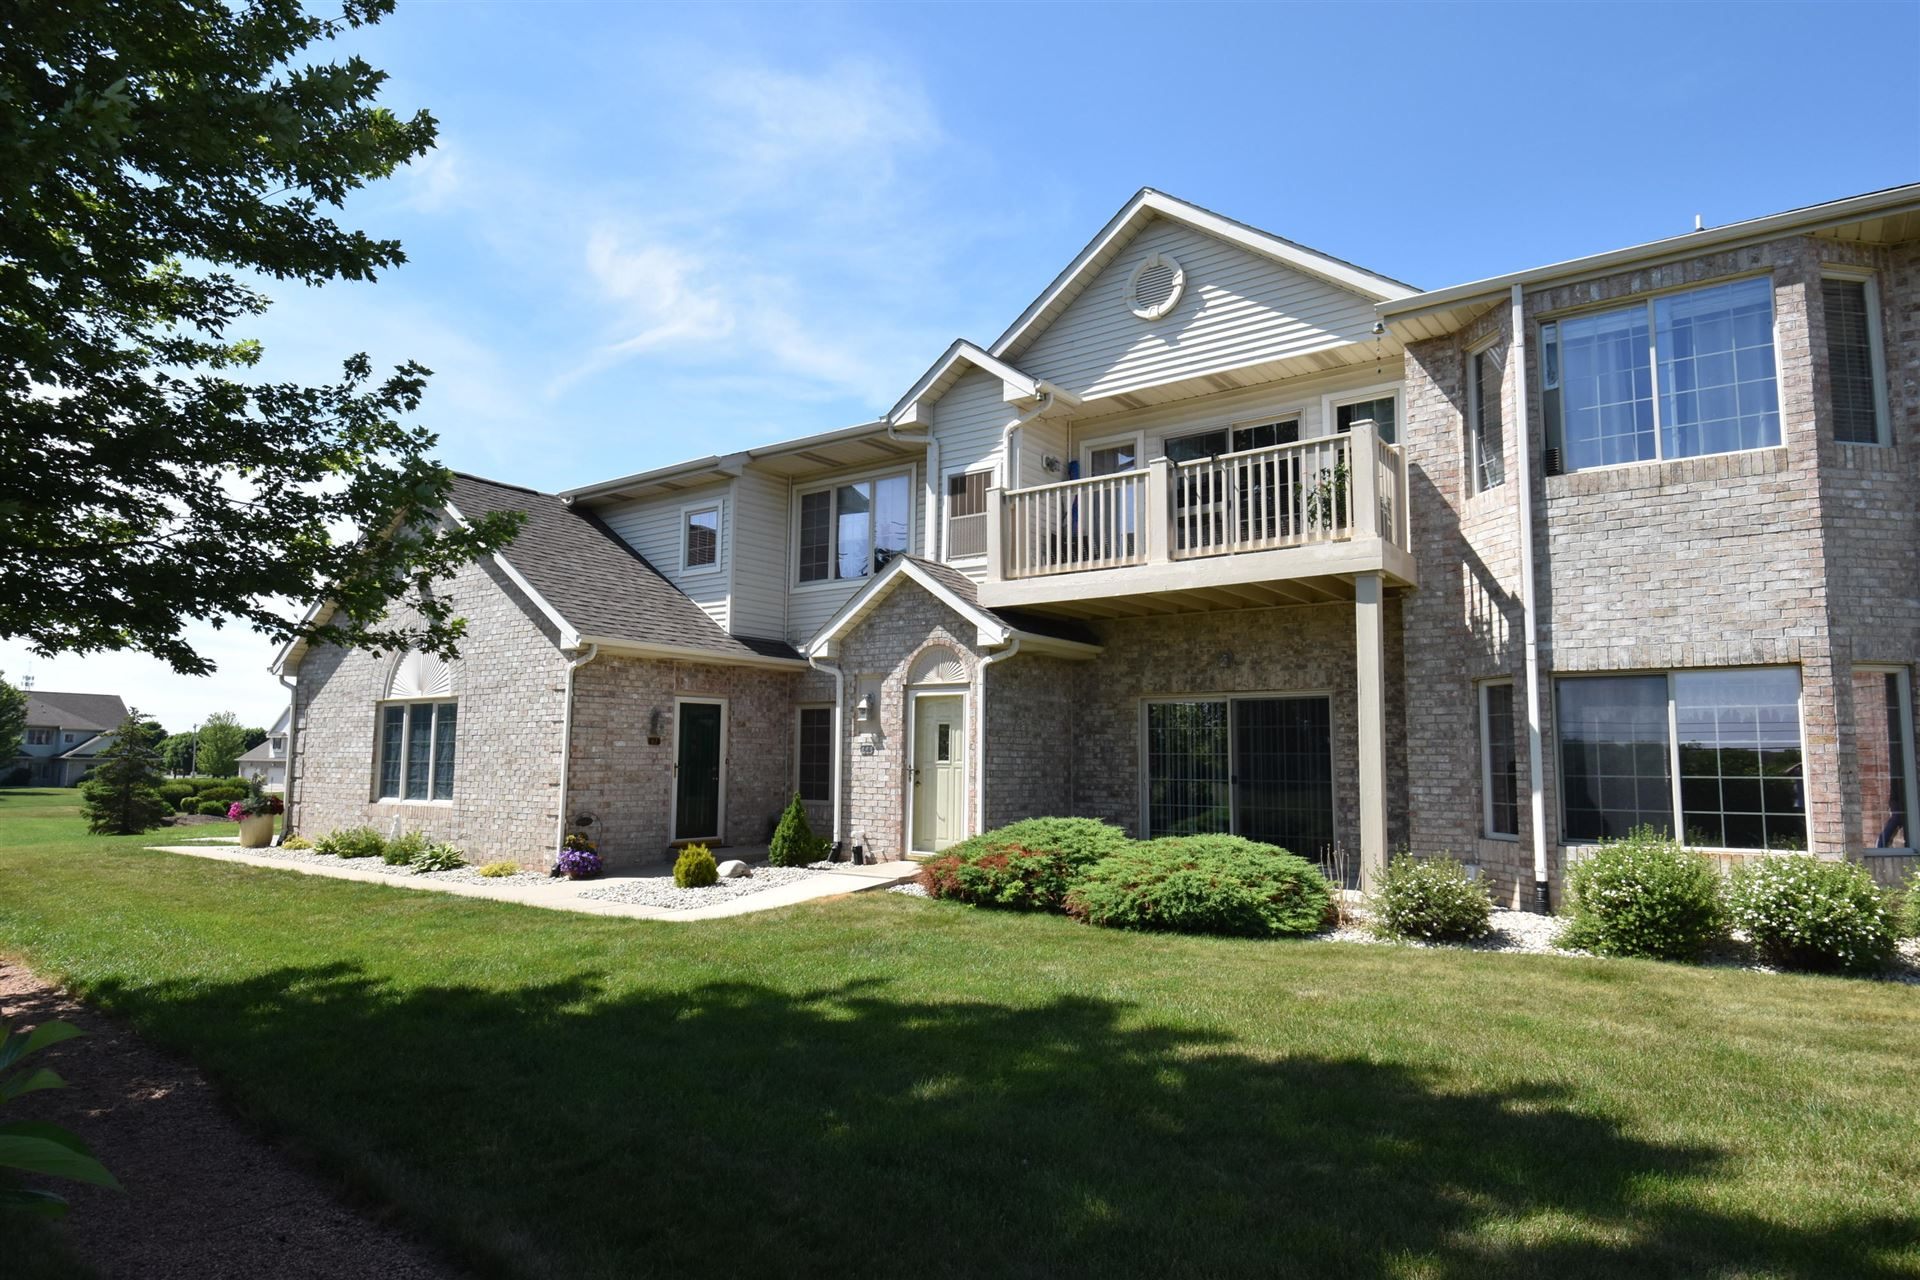 6631 Spring Hill Dr #64, Mount Pleasant, WI 53406 - #: 1696945